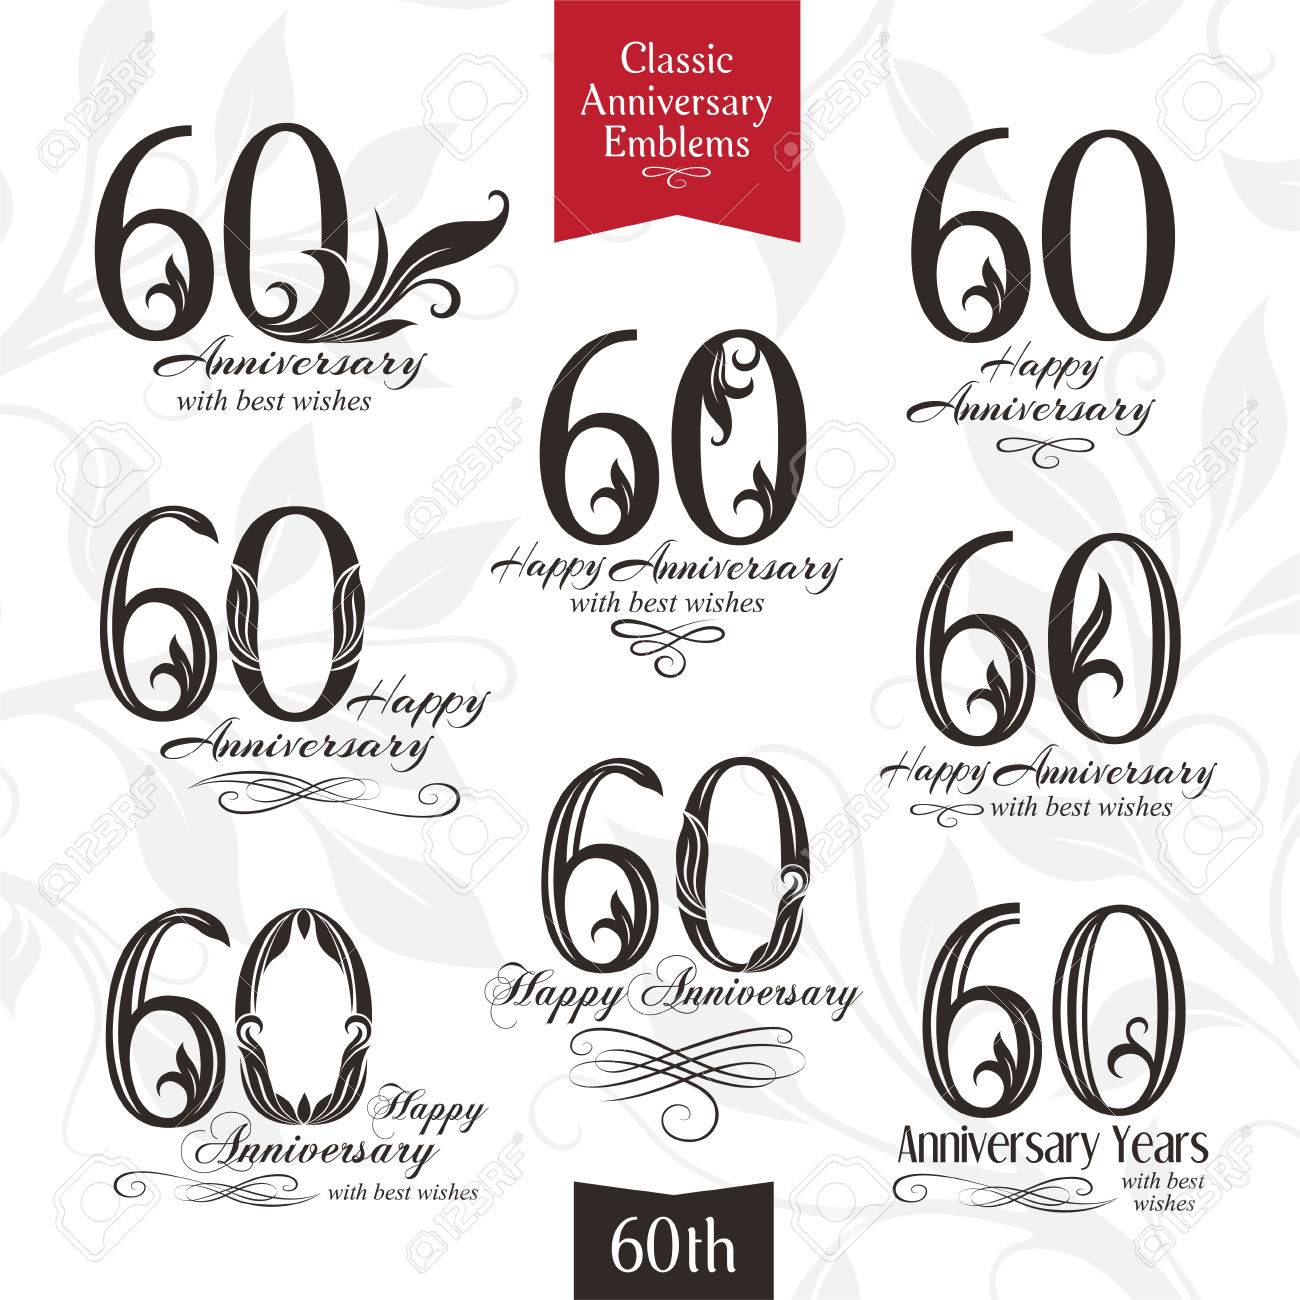 60th anniversary emblems templates of anniversary birthday 60th anniversary emblems templates of anniversary birthday and jubilee symbols stock vector 62600275 biocorpaavc Choice Image